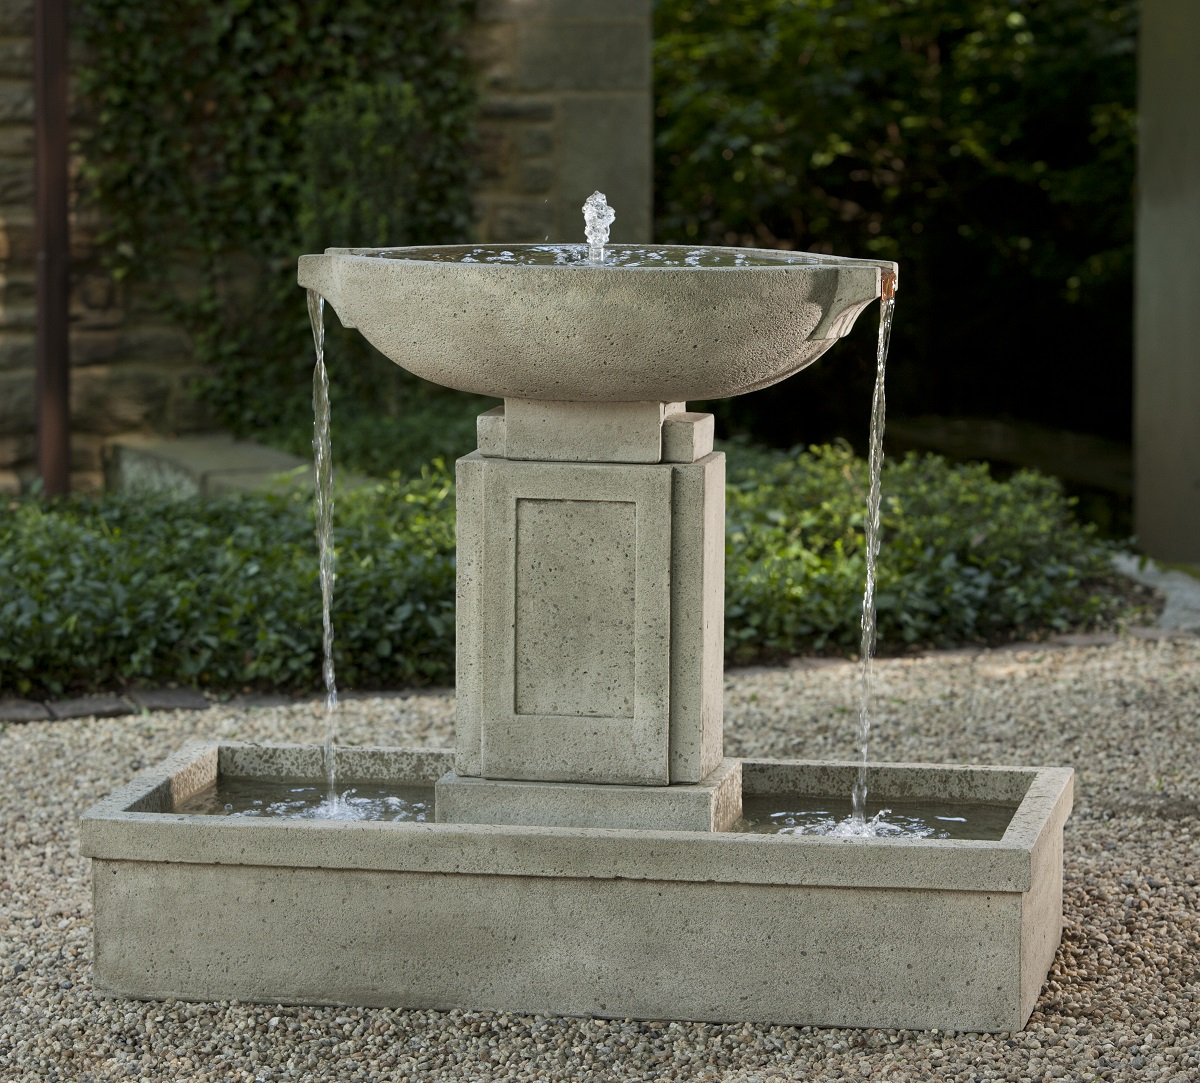 New Cement Fountains